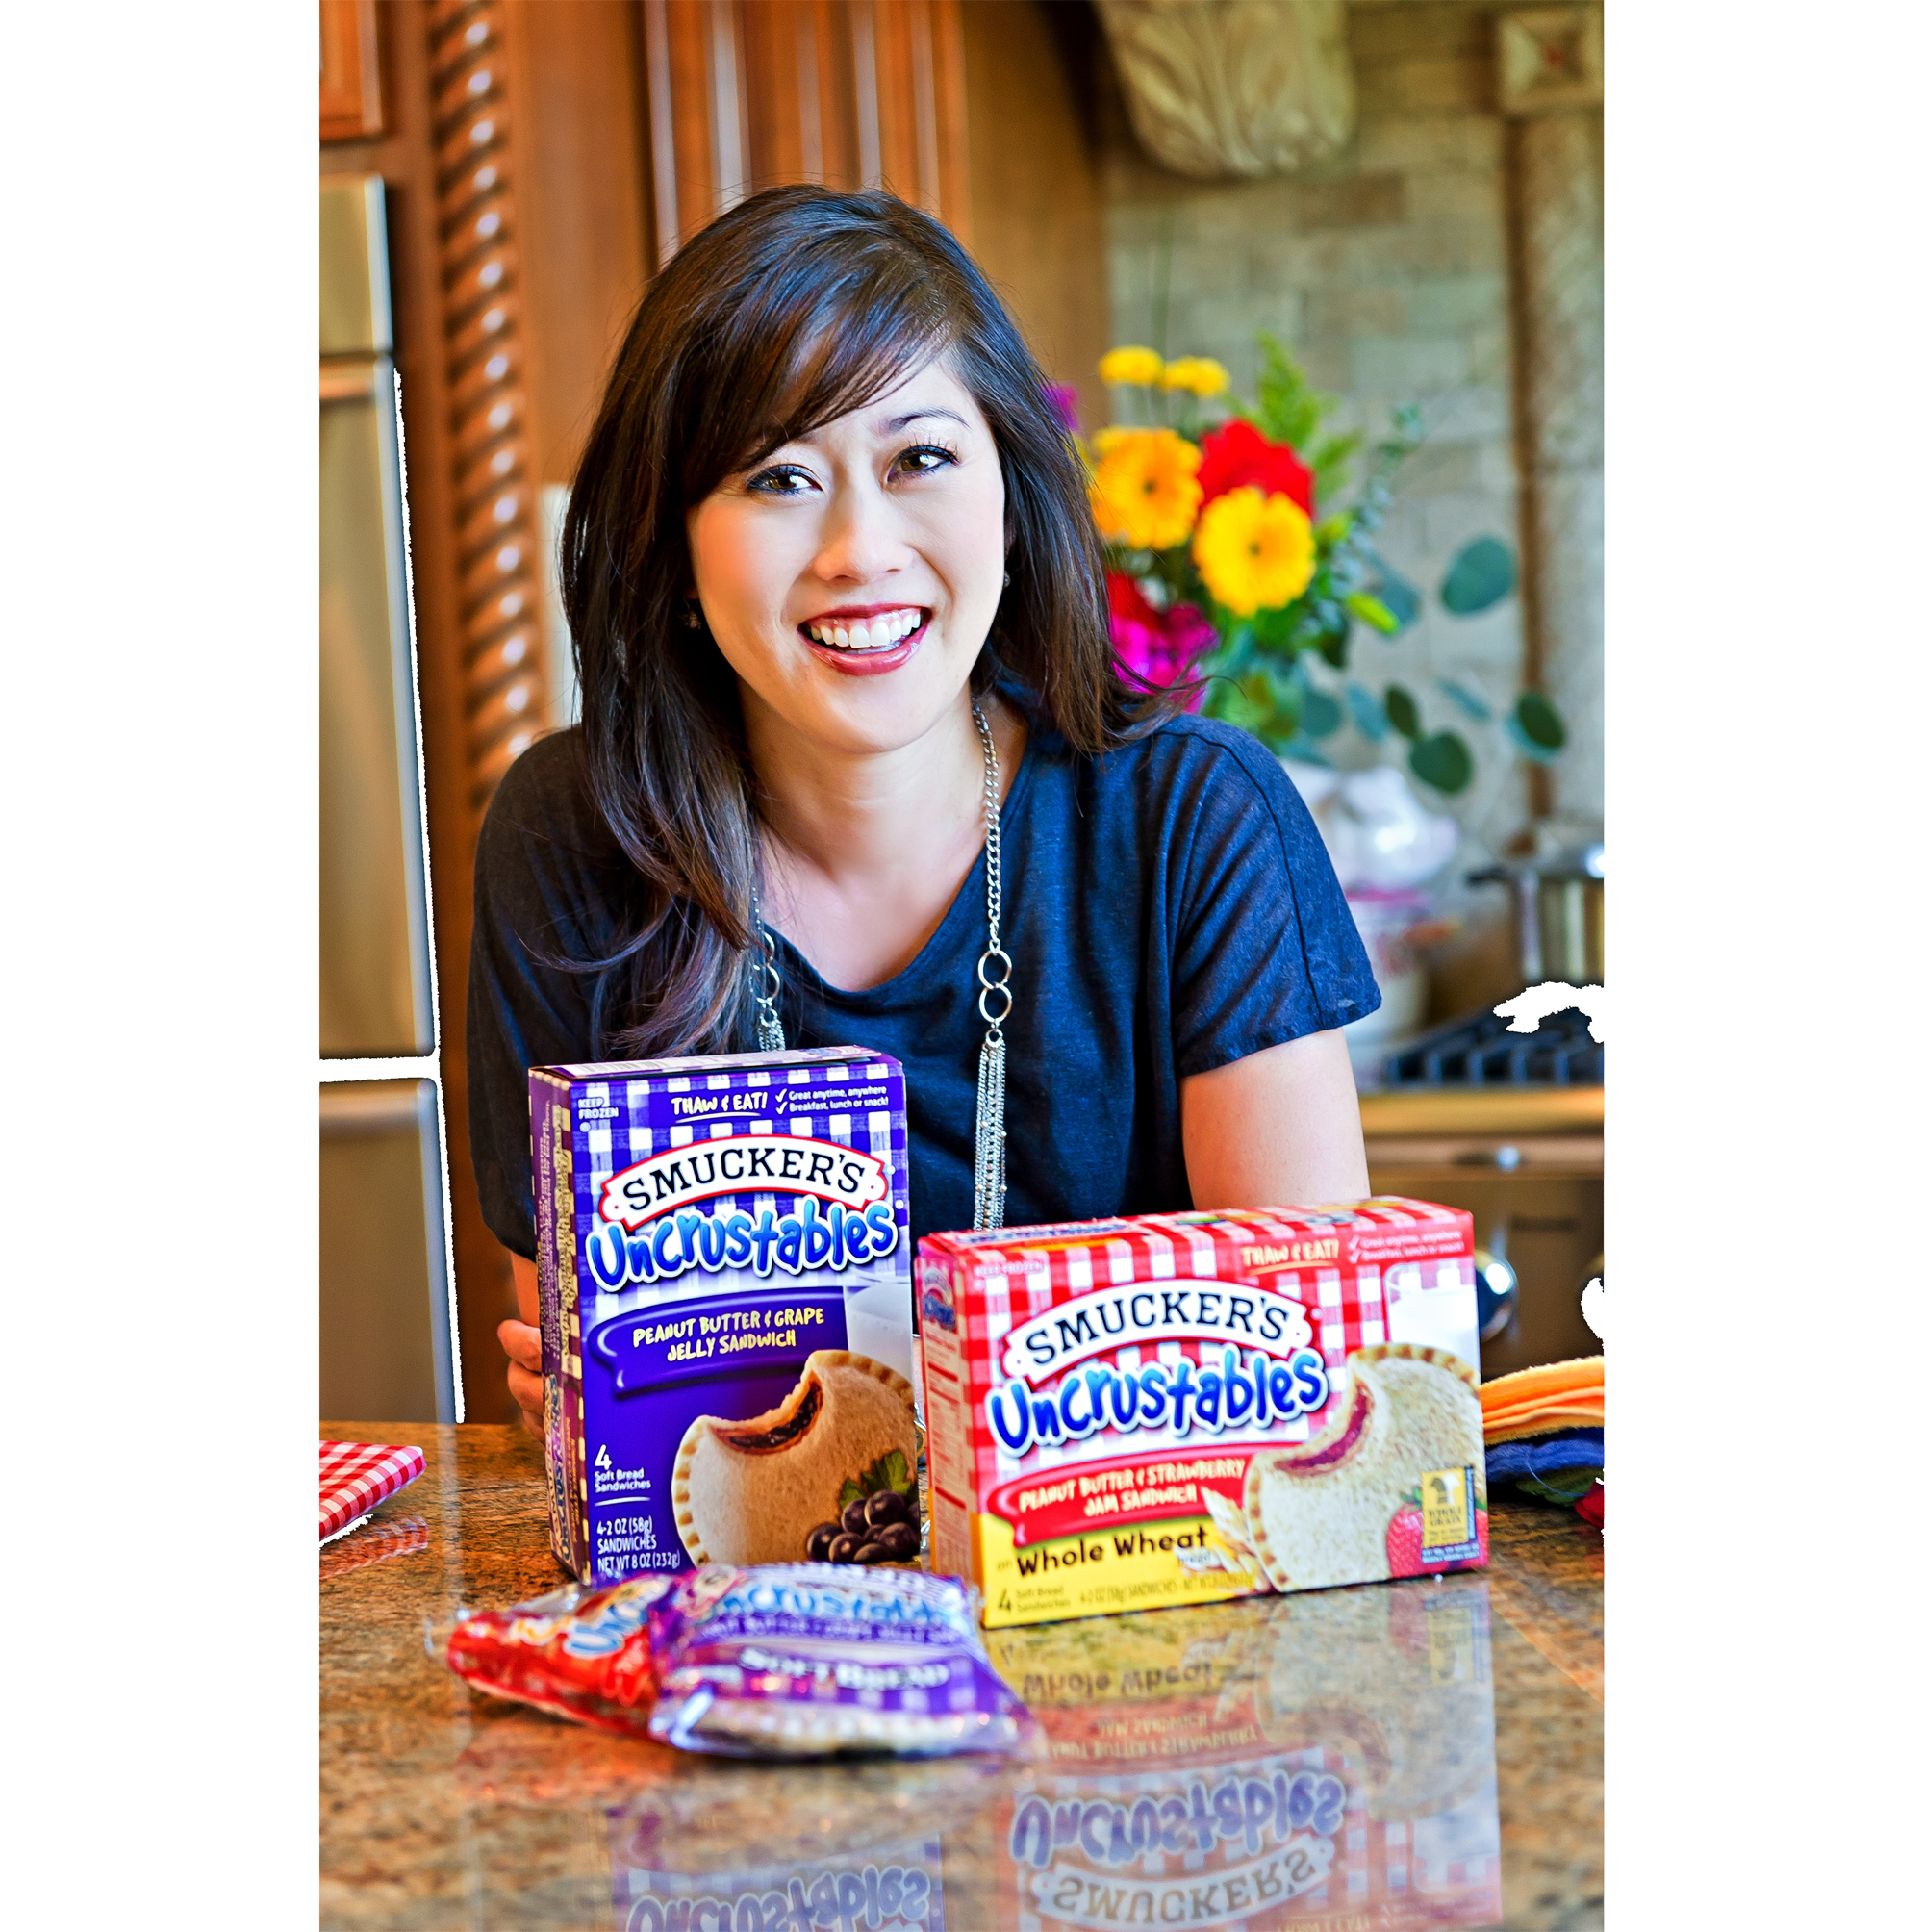 Uncrustables Unstoppable Family Photo Contest: Win a Year Supply of Uncrustables and $15,000 for a Family Adventure! (US Only)